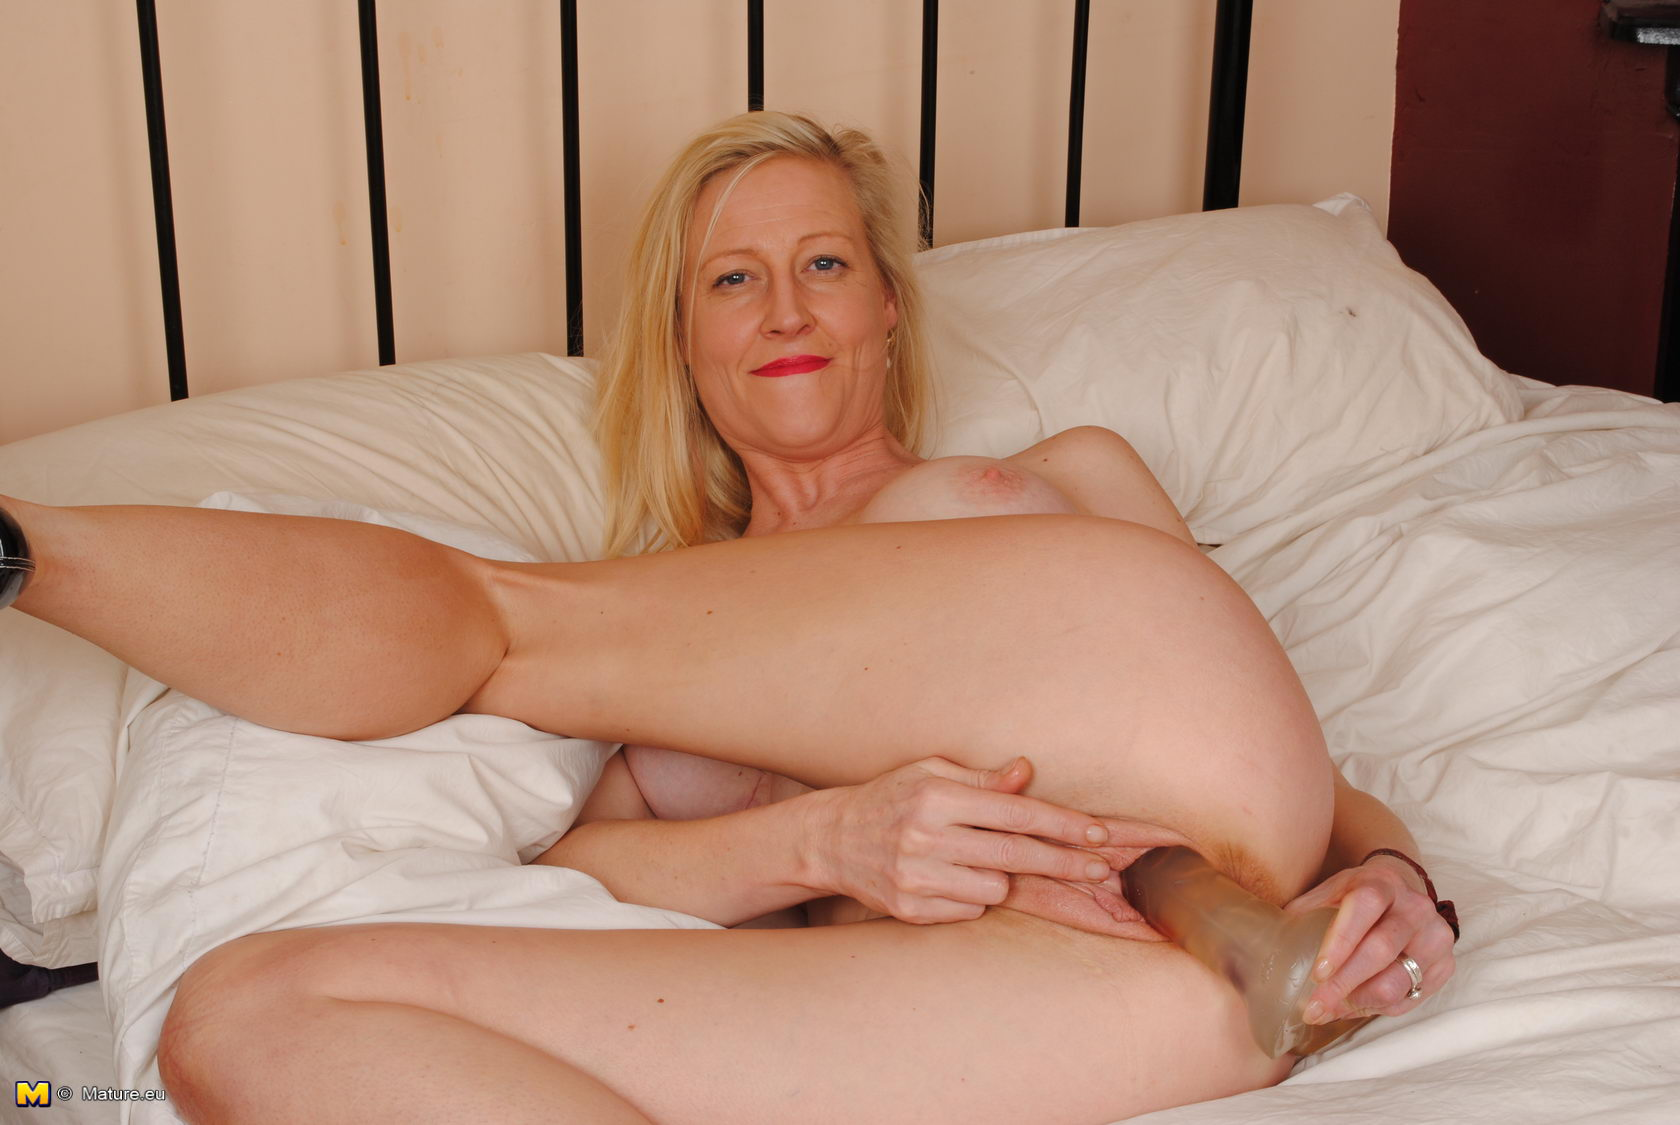 Photos Anilos Janet Anilos Janet stretches her mature pussy lips far and  wide offering an inside look at her snatch Views: 1,096